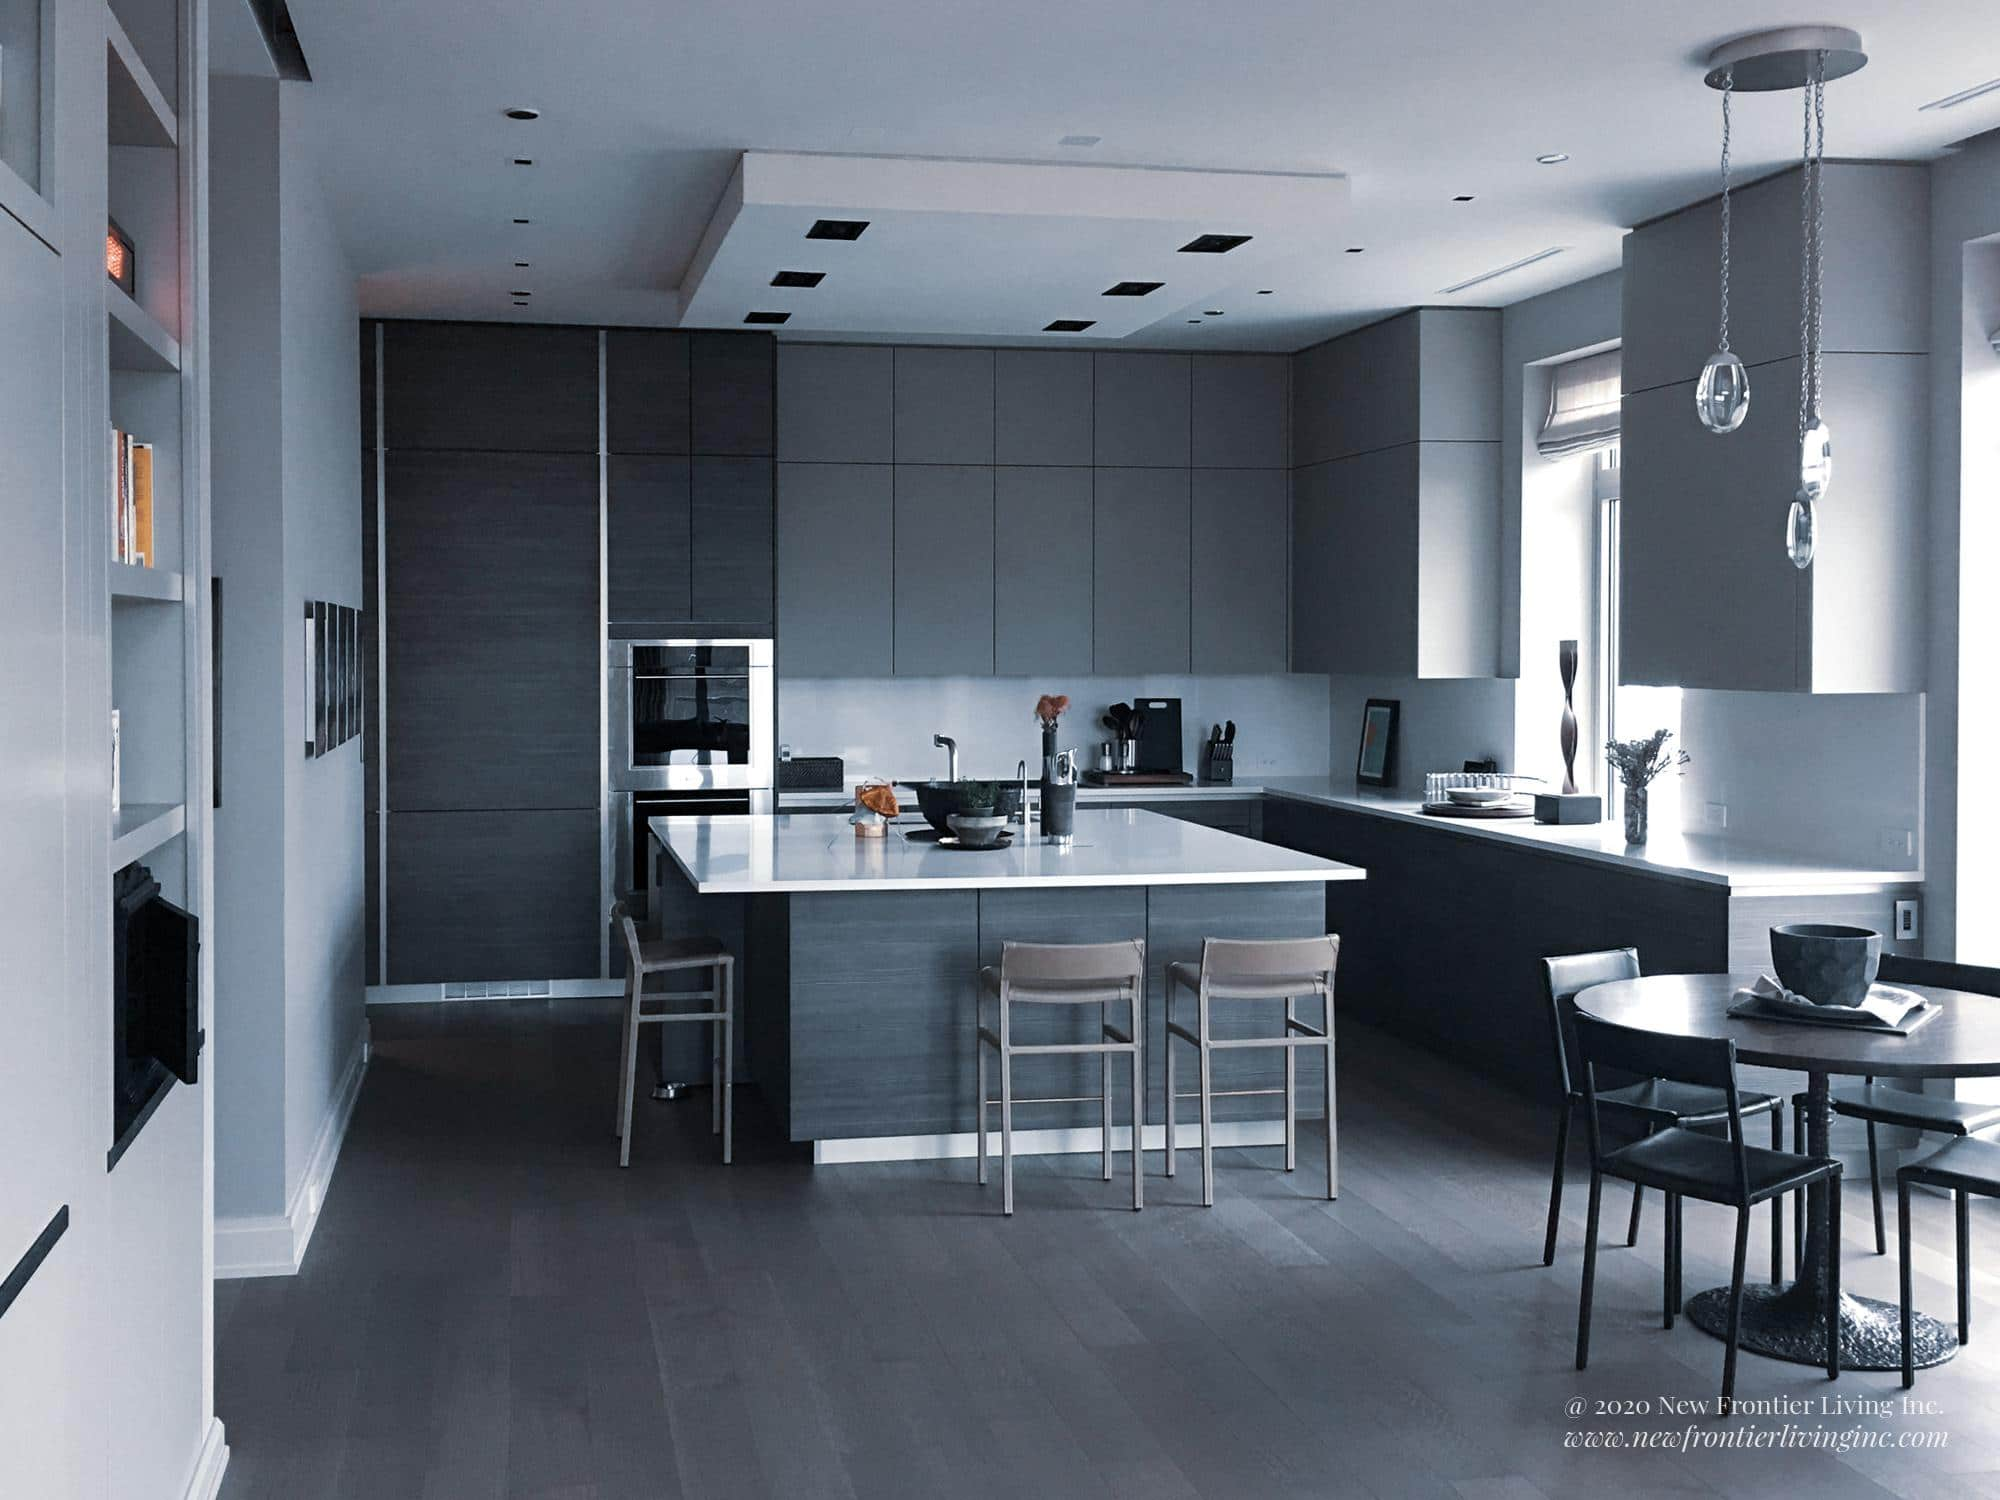 Black kitchen with square island and stools, round extra table on the right